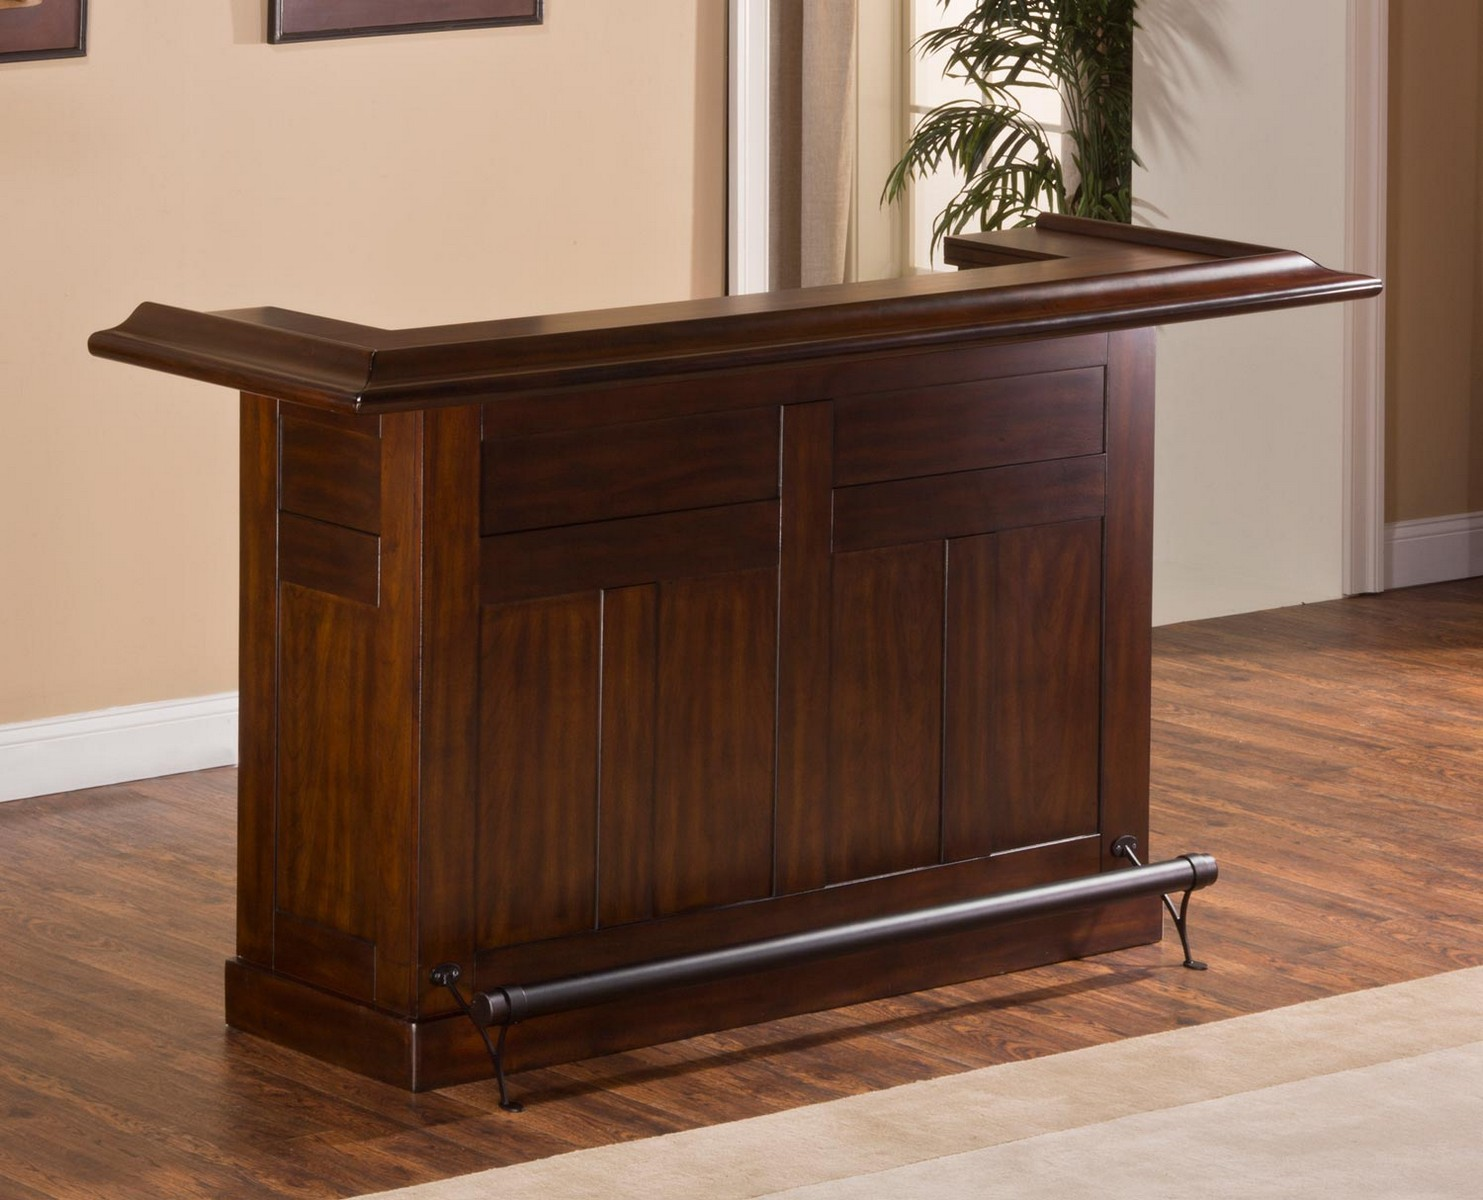 Hillsdale Classic Large Brown Cherry Bar - Brown Cherry